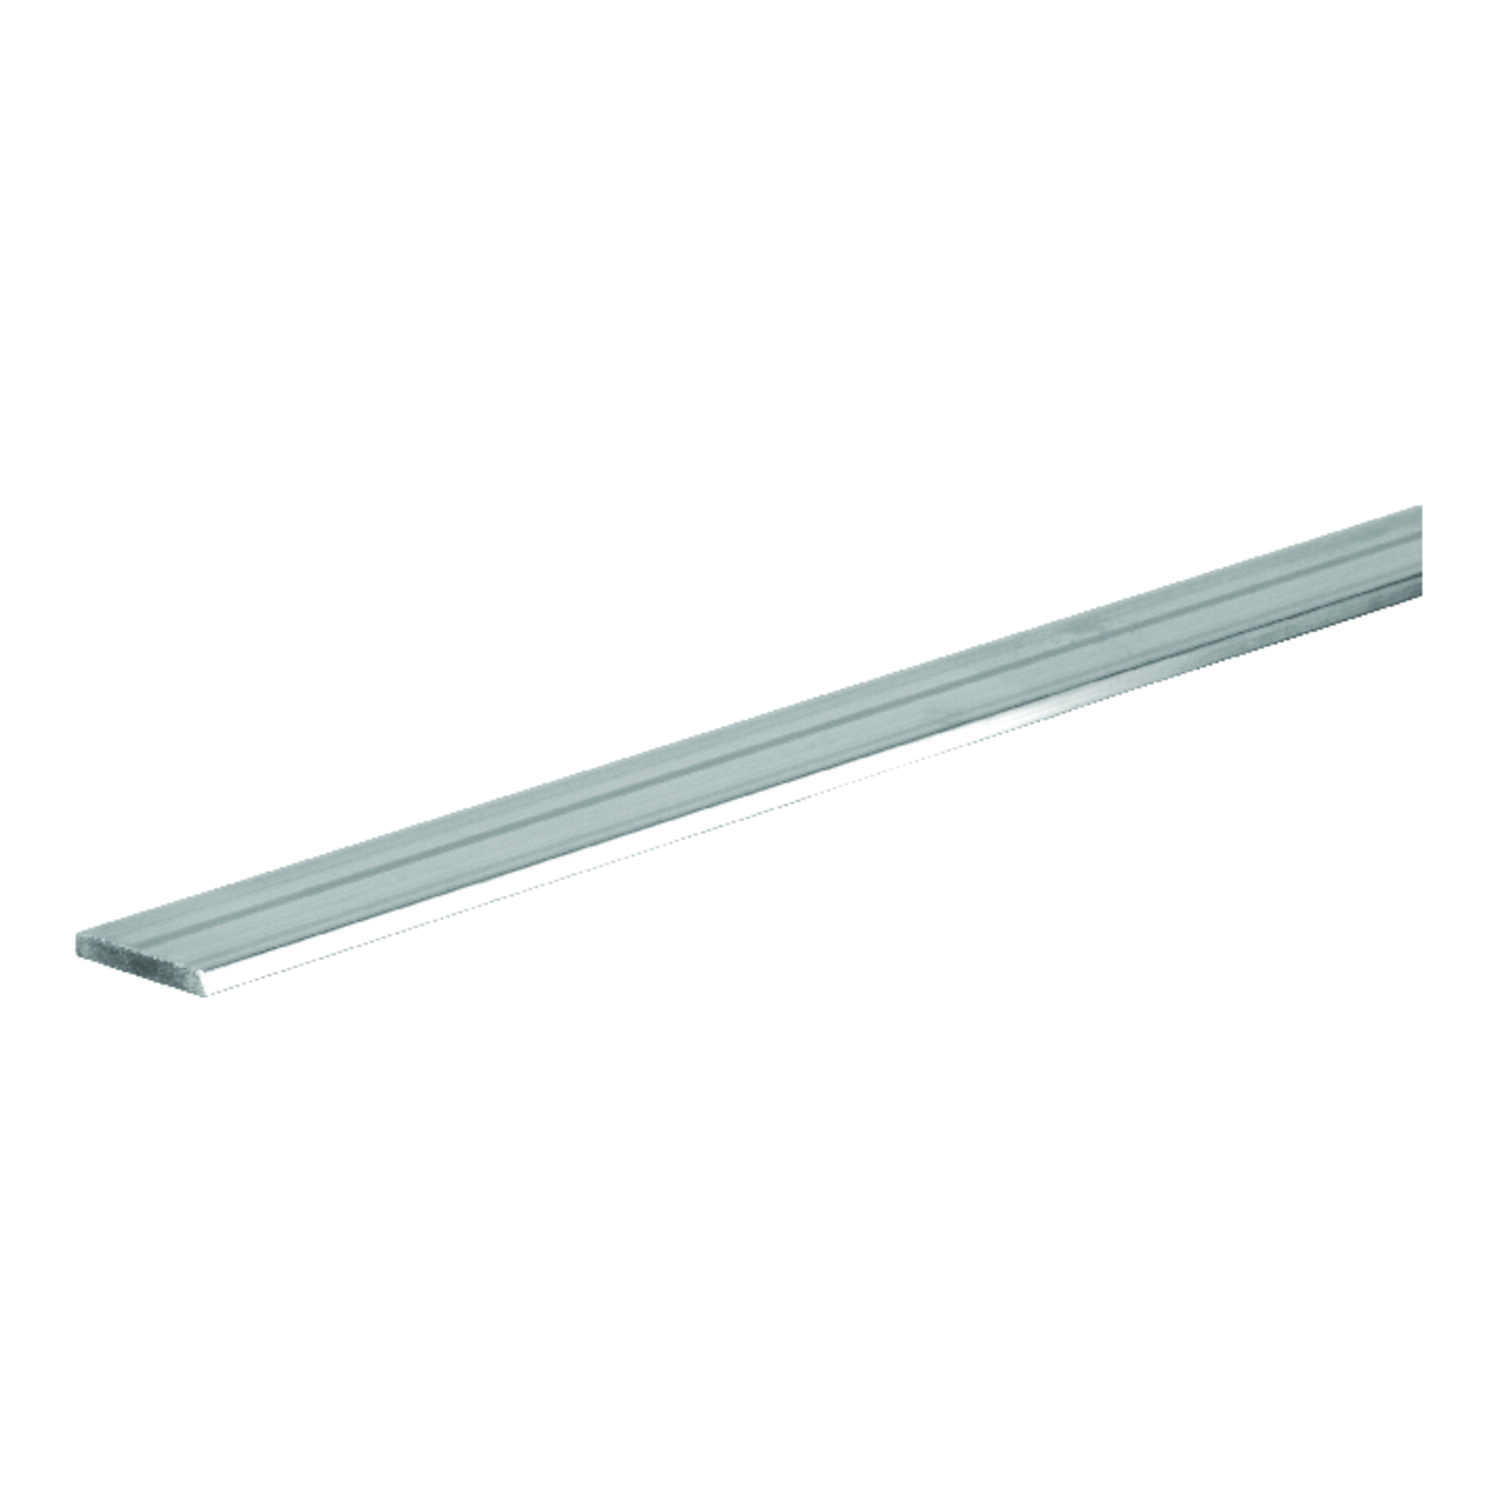 Boltmaster  0.0625 in.  x 1.5 in. W x 8 ft. L Weldable Aluminum Flat Bar  1 pk